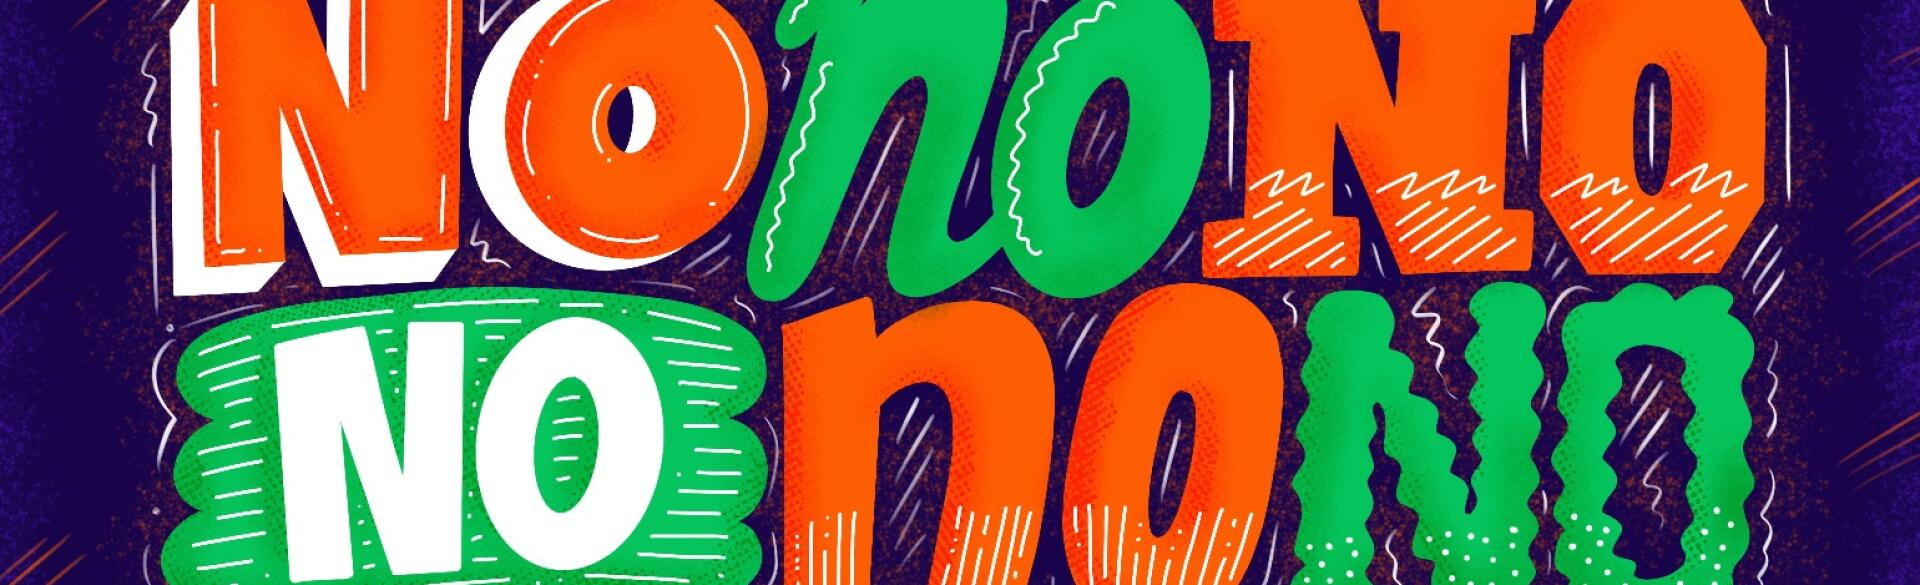 typography_illustration_of_the_word_no_by_harkiran_kalsi_1540x600